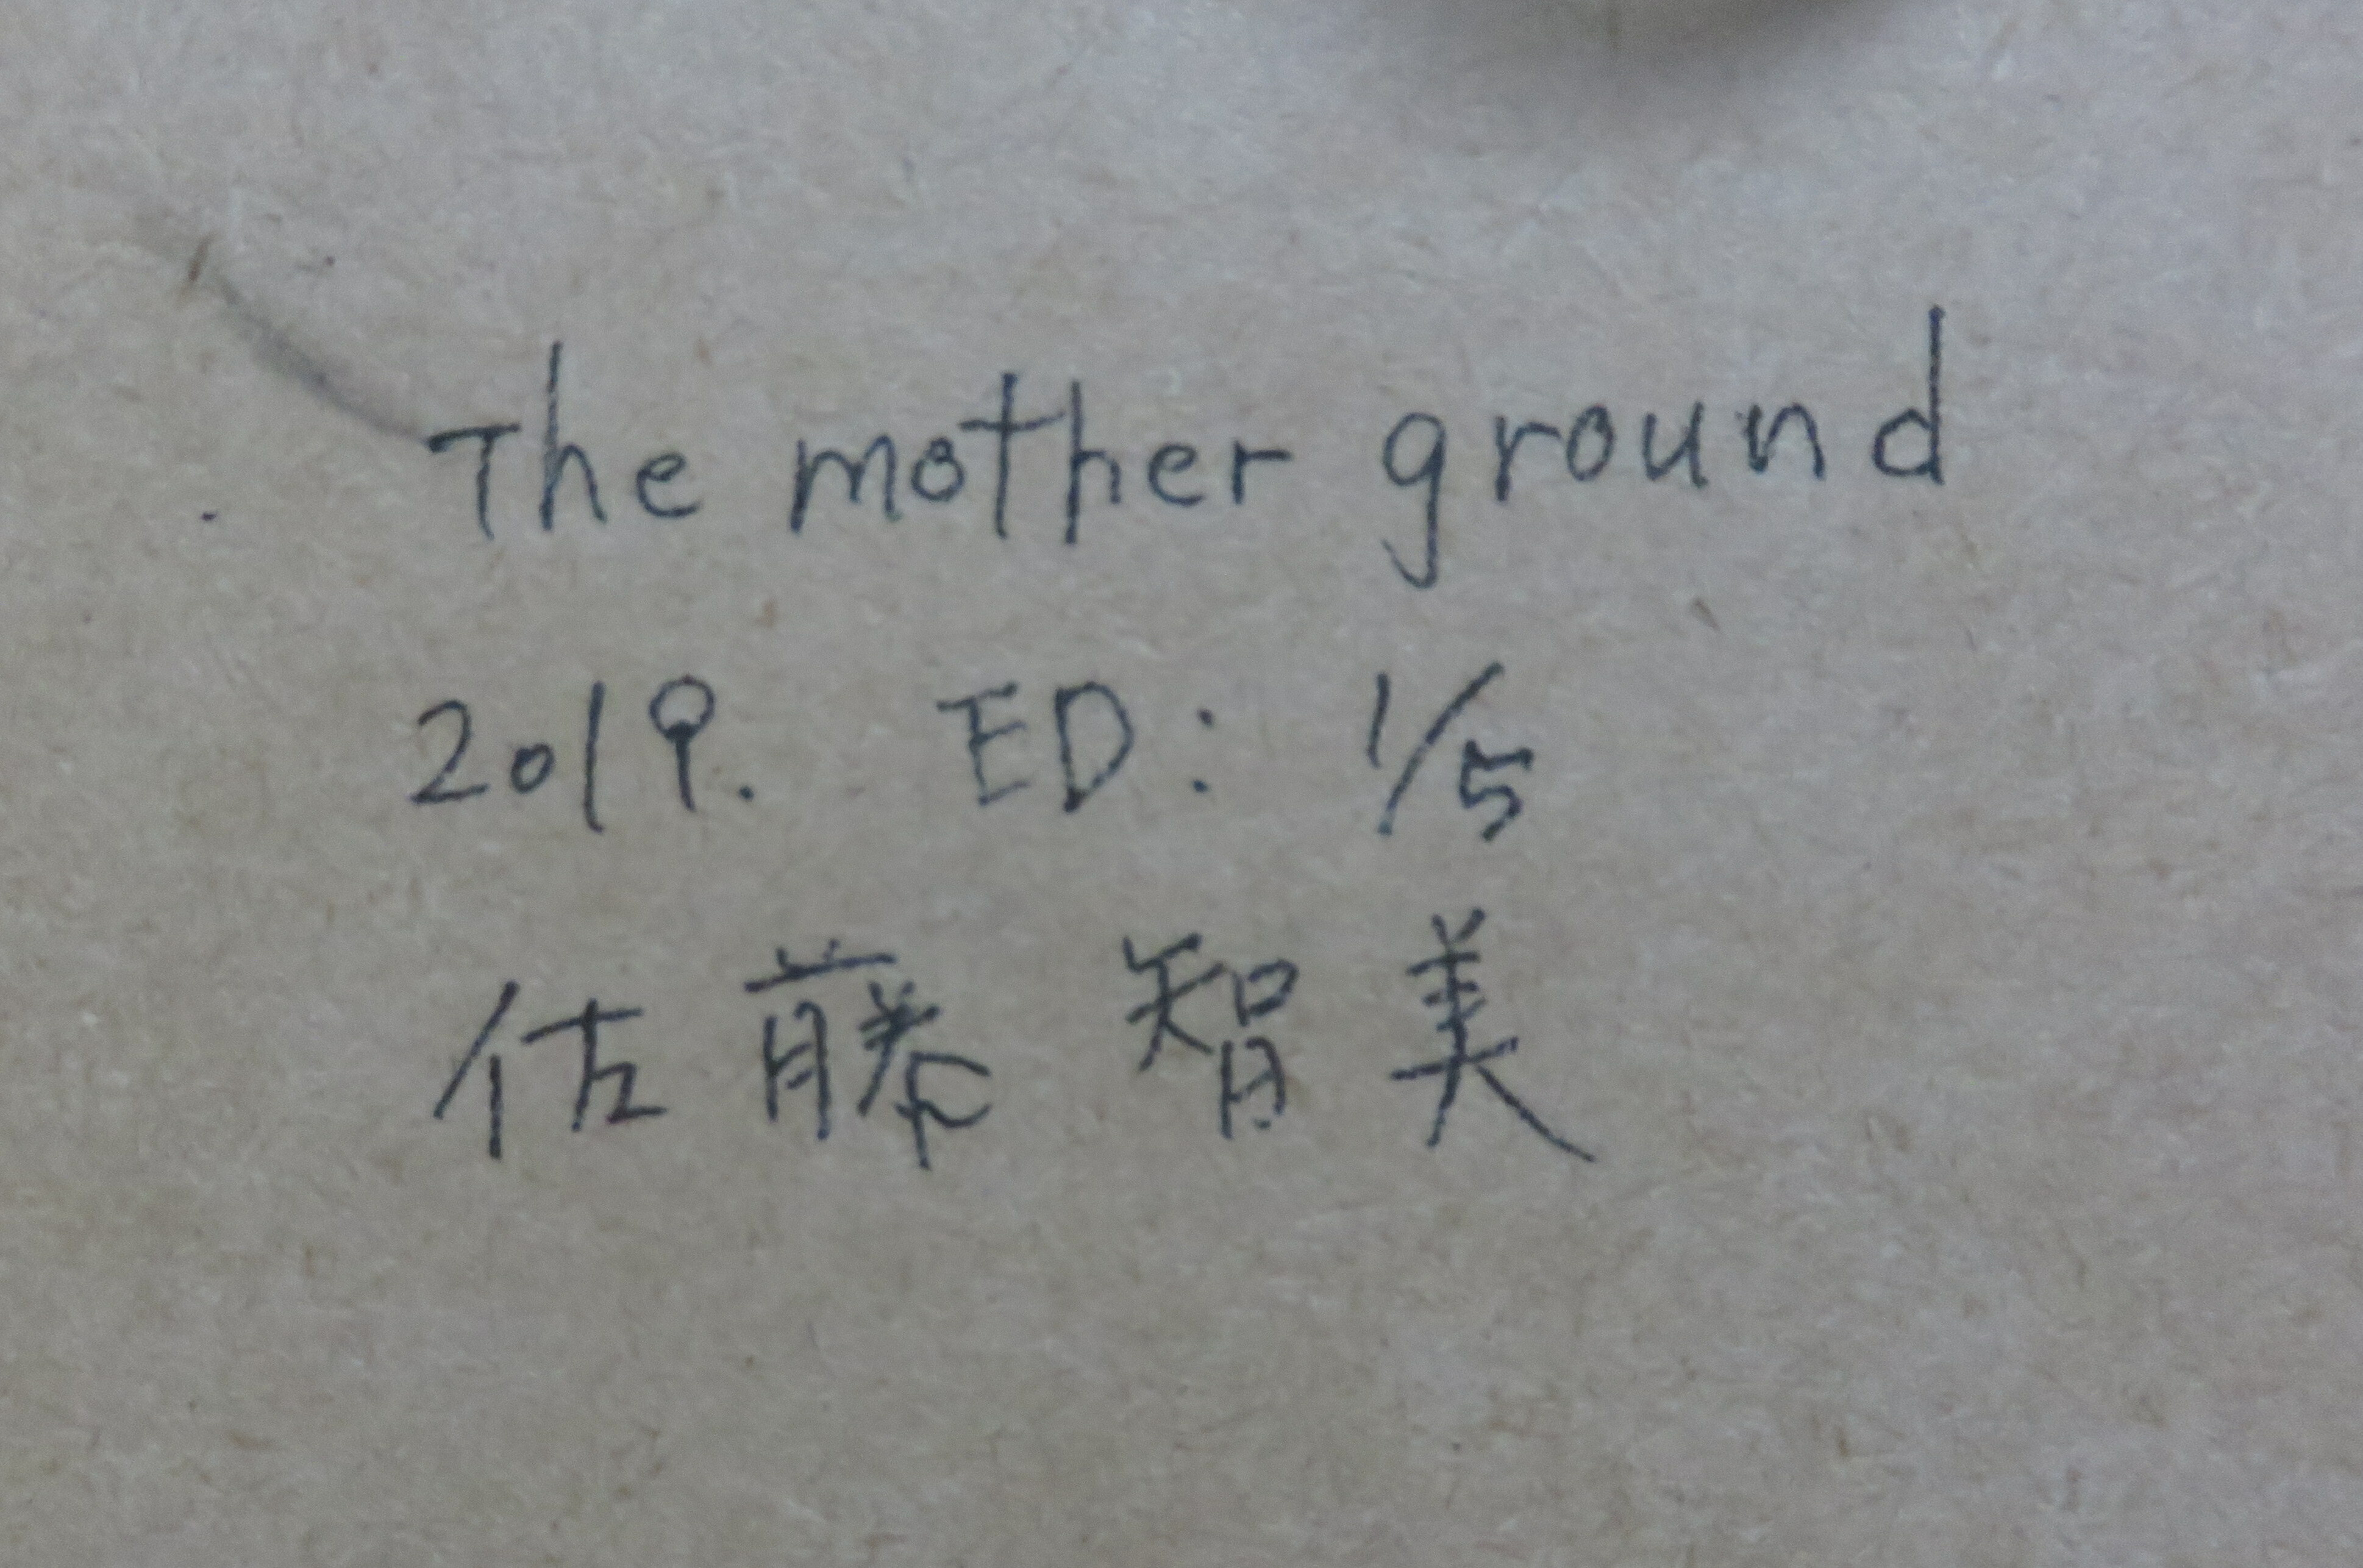 The mother ground